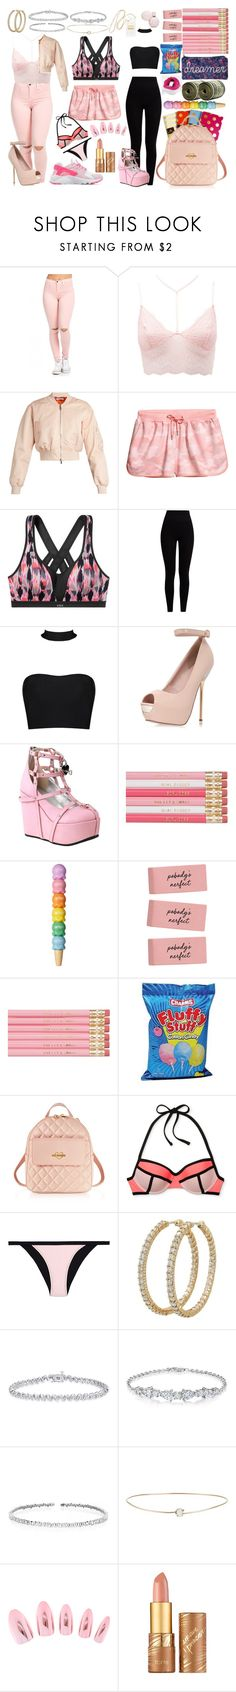 """Untitled #242"" by duhitzparis ❤ liked on Polyvore featuring Charlotte Russe, Givenchy, Victoria's Secret, Pepper & Mayne, Topshop, Demonia, Love Moschino, Heidi Klein, Roberto Coin and Suzanne Kalan"